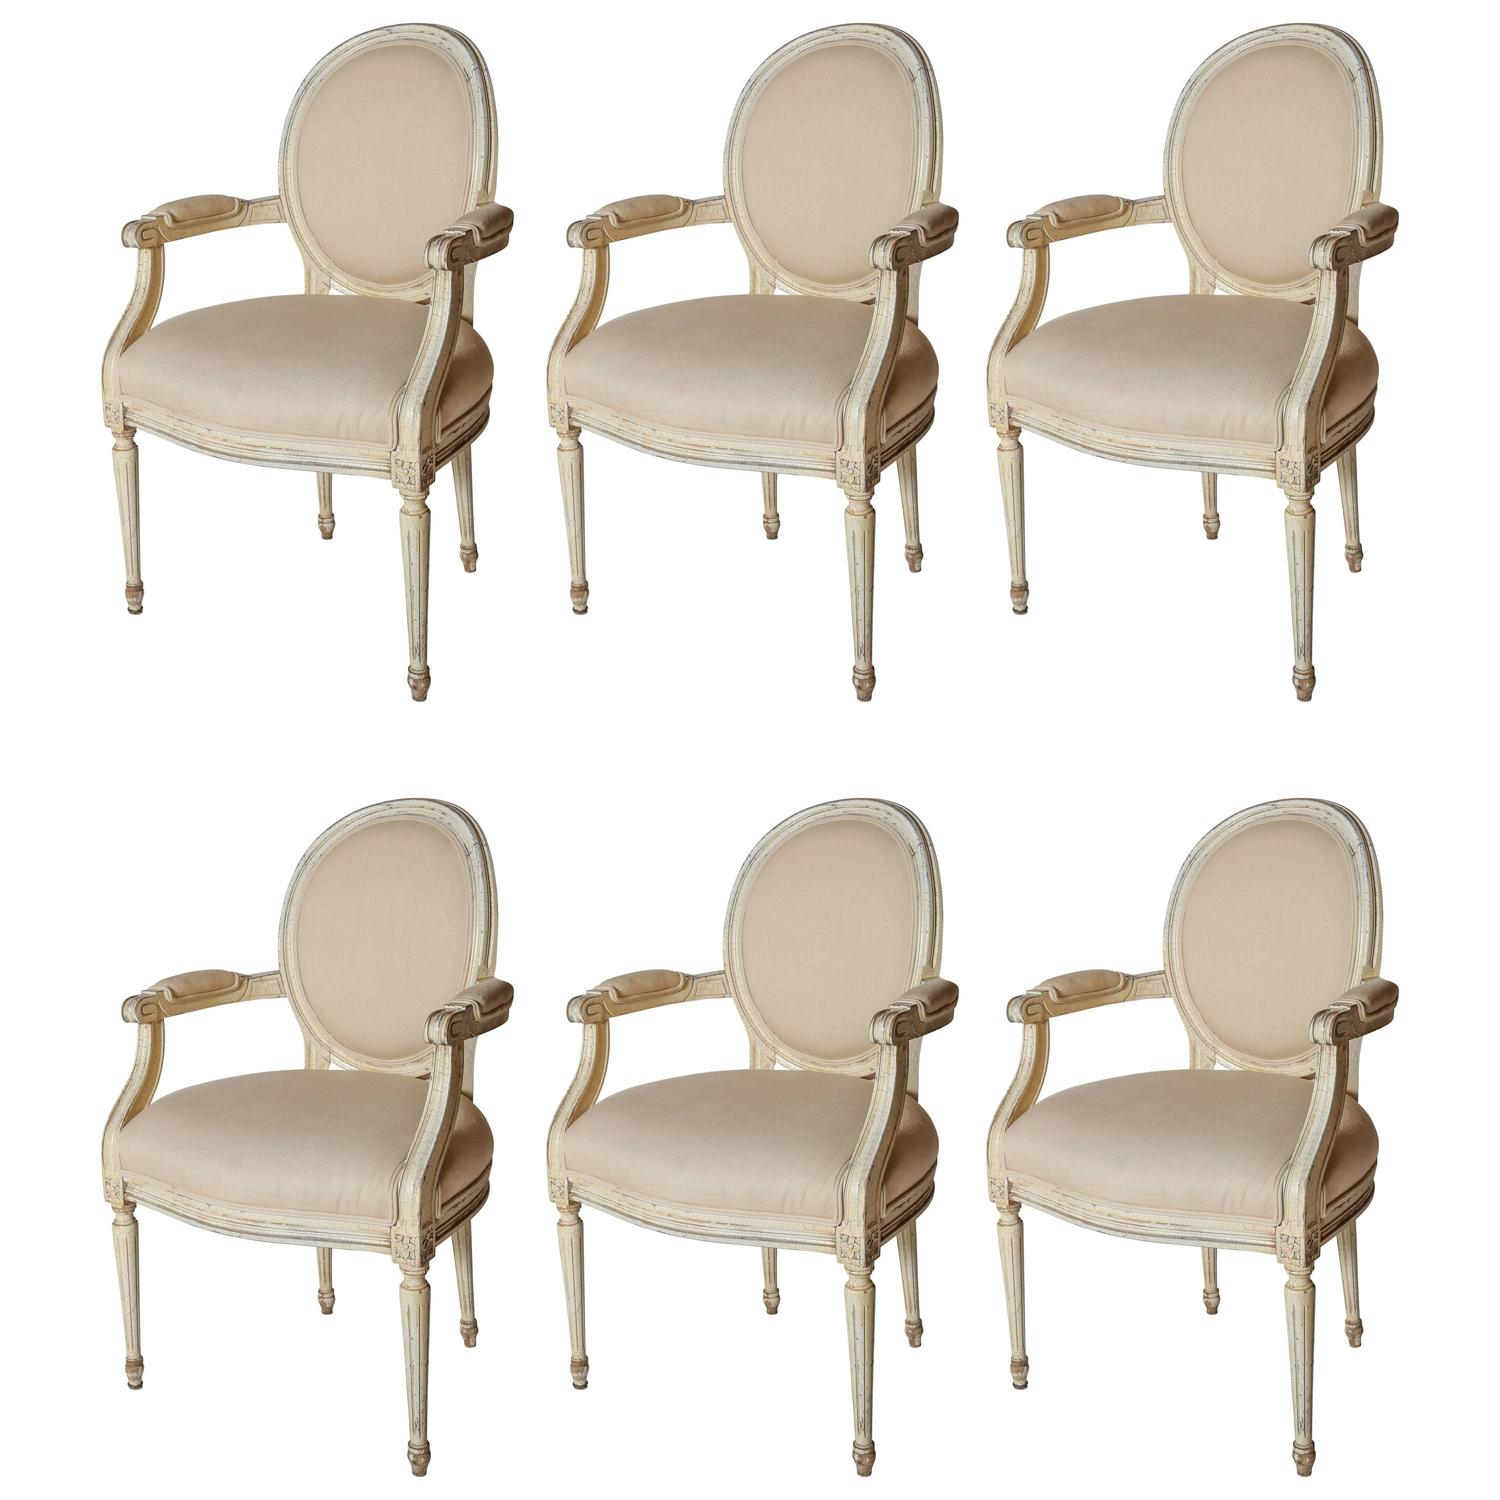 Dining Room Chairs With Arms For Sale: Set Of Six Painted Louis XVI-Style Dining Arm Chairs For